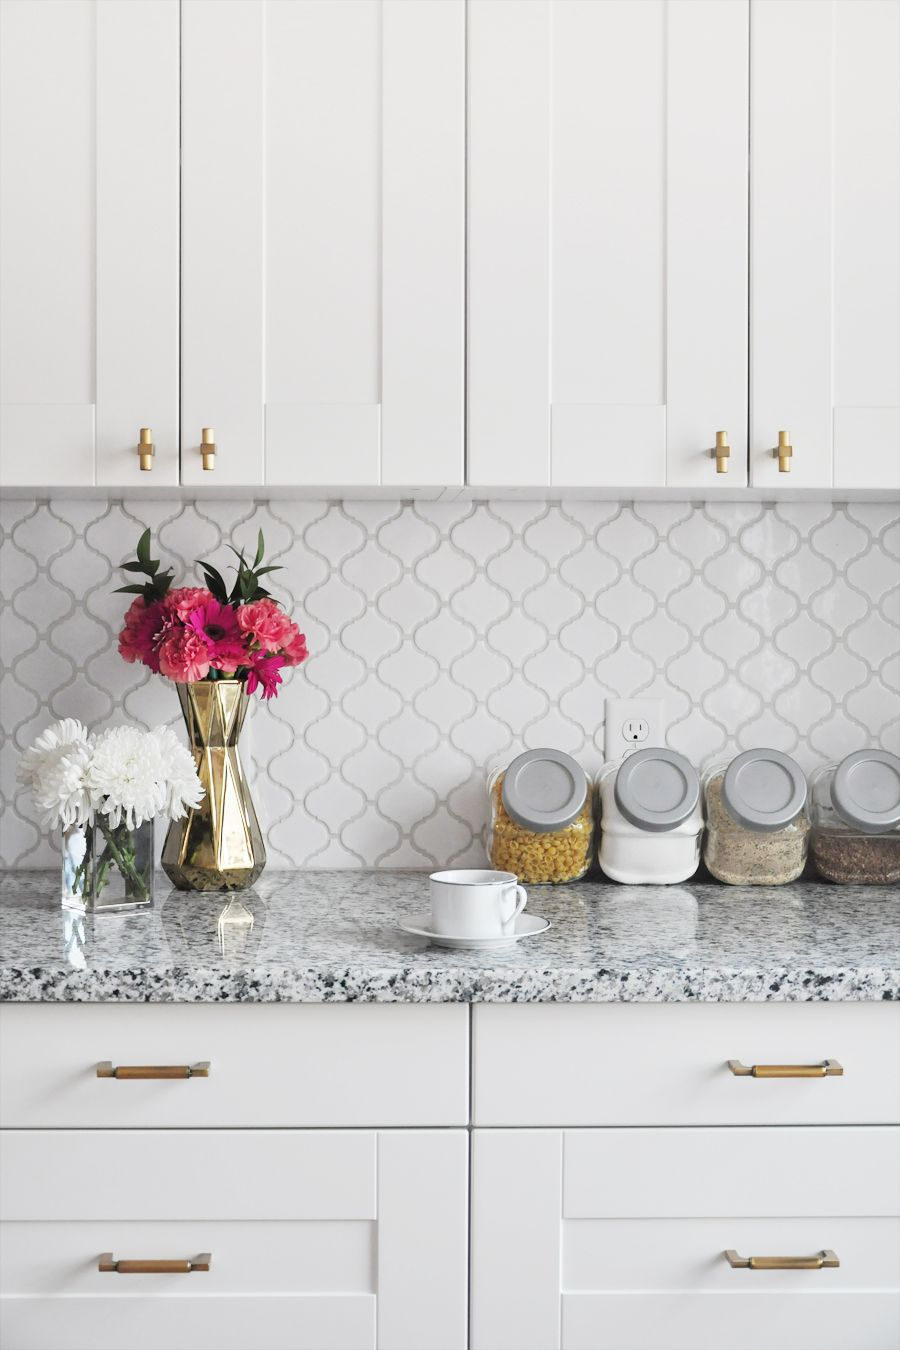 kitchen backsplash tile. How To Tile A Kitchen Backsplash  DIY Tutorial Sponsored By Wayfair